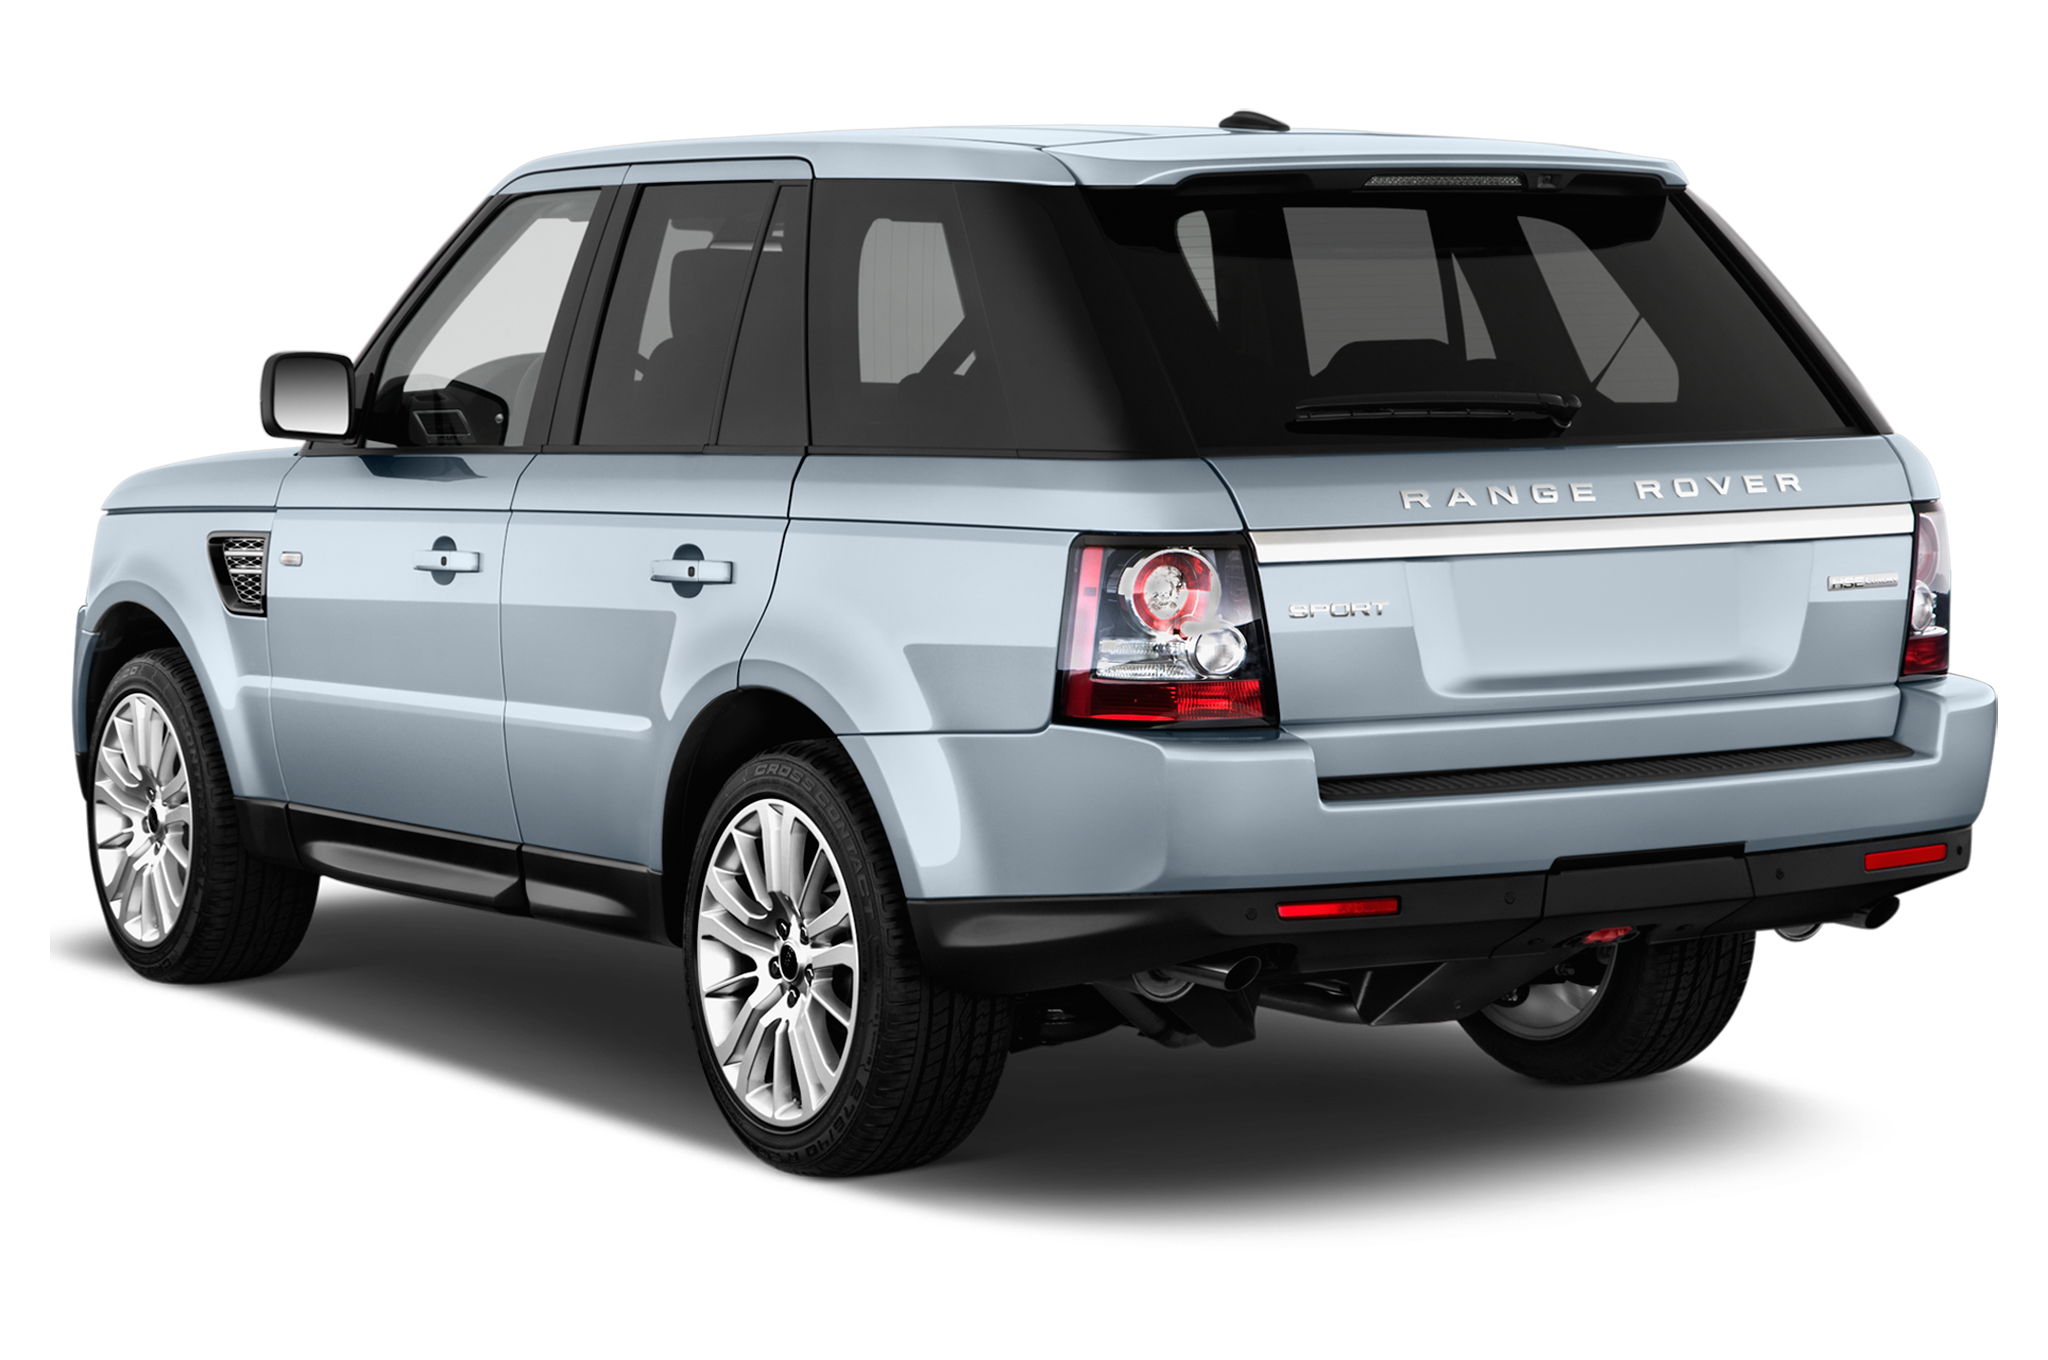 2014 land rover range rover sport spied winter testing. Black Bedroom Furniture Sets. Home Design Ideas